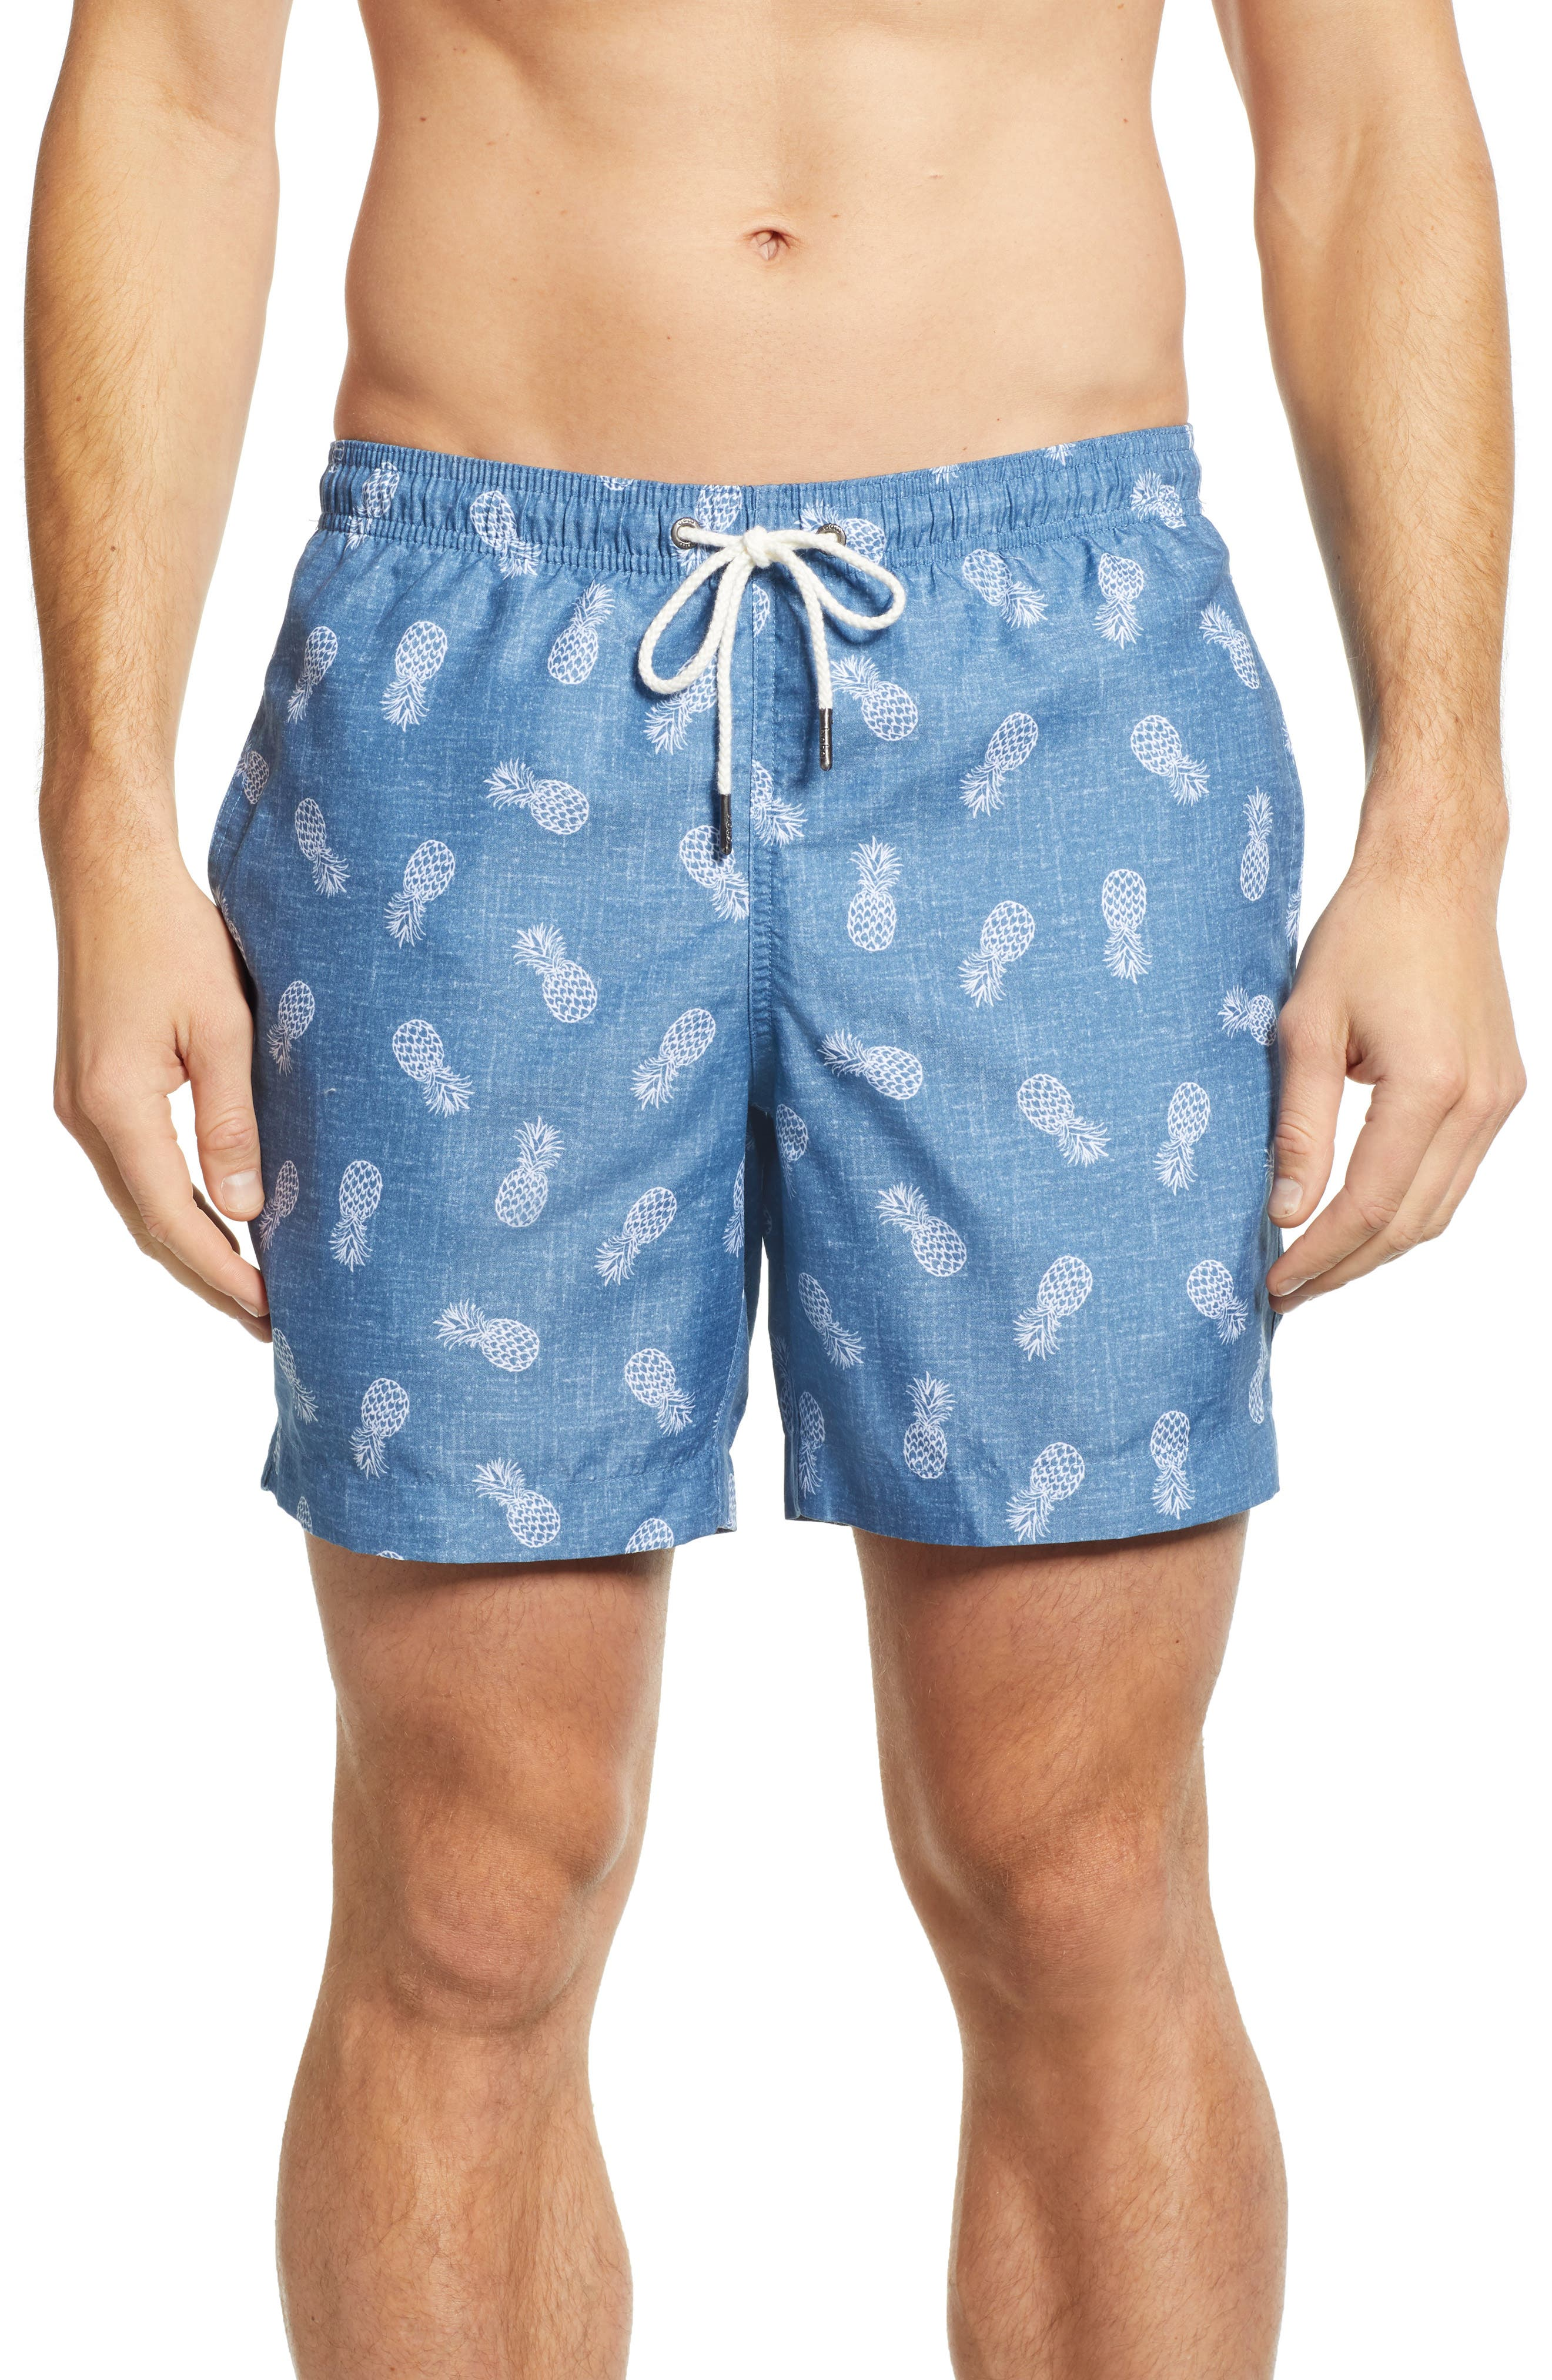 Cabo Pineapples 6.5 Inch Swim Trunks,                             Main thumbnail 1, color,                             402